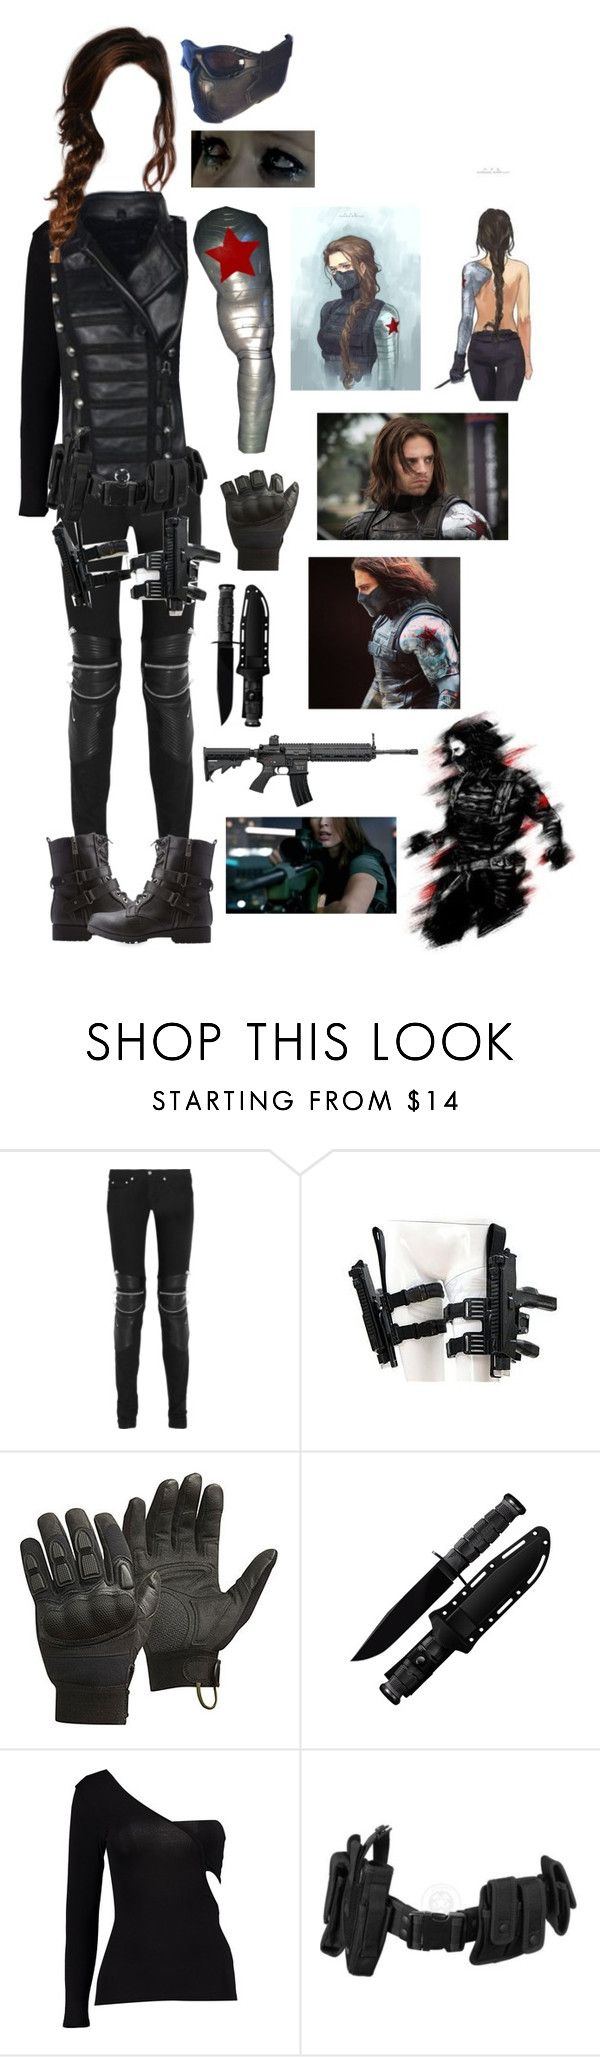 """""""The Winter Soldier - Bucky Barnes (Female)"""" by blackwidow321 ❤ liked on Polyvore featuring Sebastian Professional, Yves Saint Laurent, CamelBak, Boohoo, POLICE, Bamboo, Gaia, marvel, CaptainAmerica and DC"""